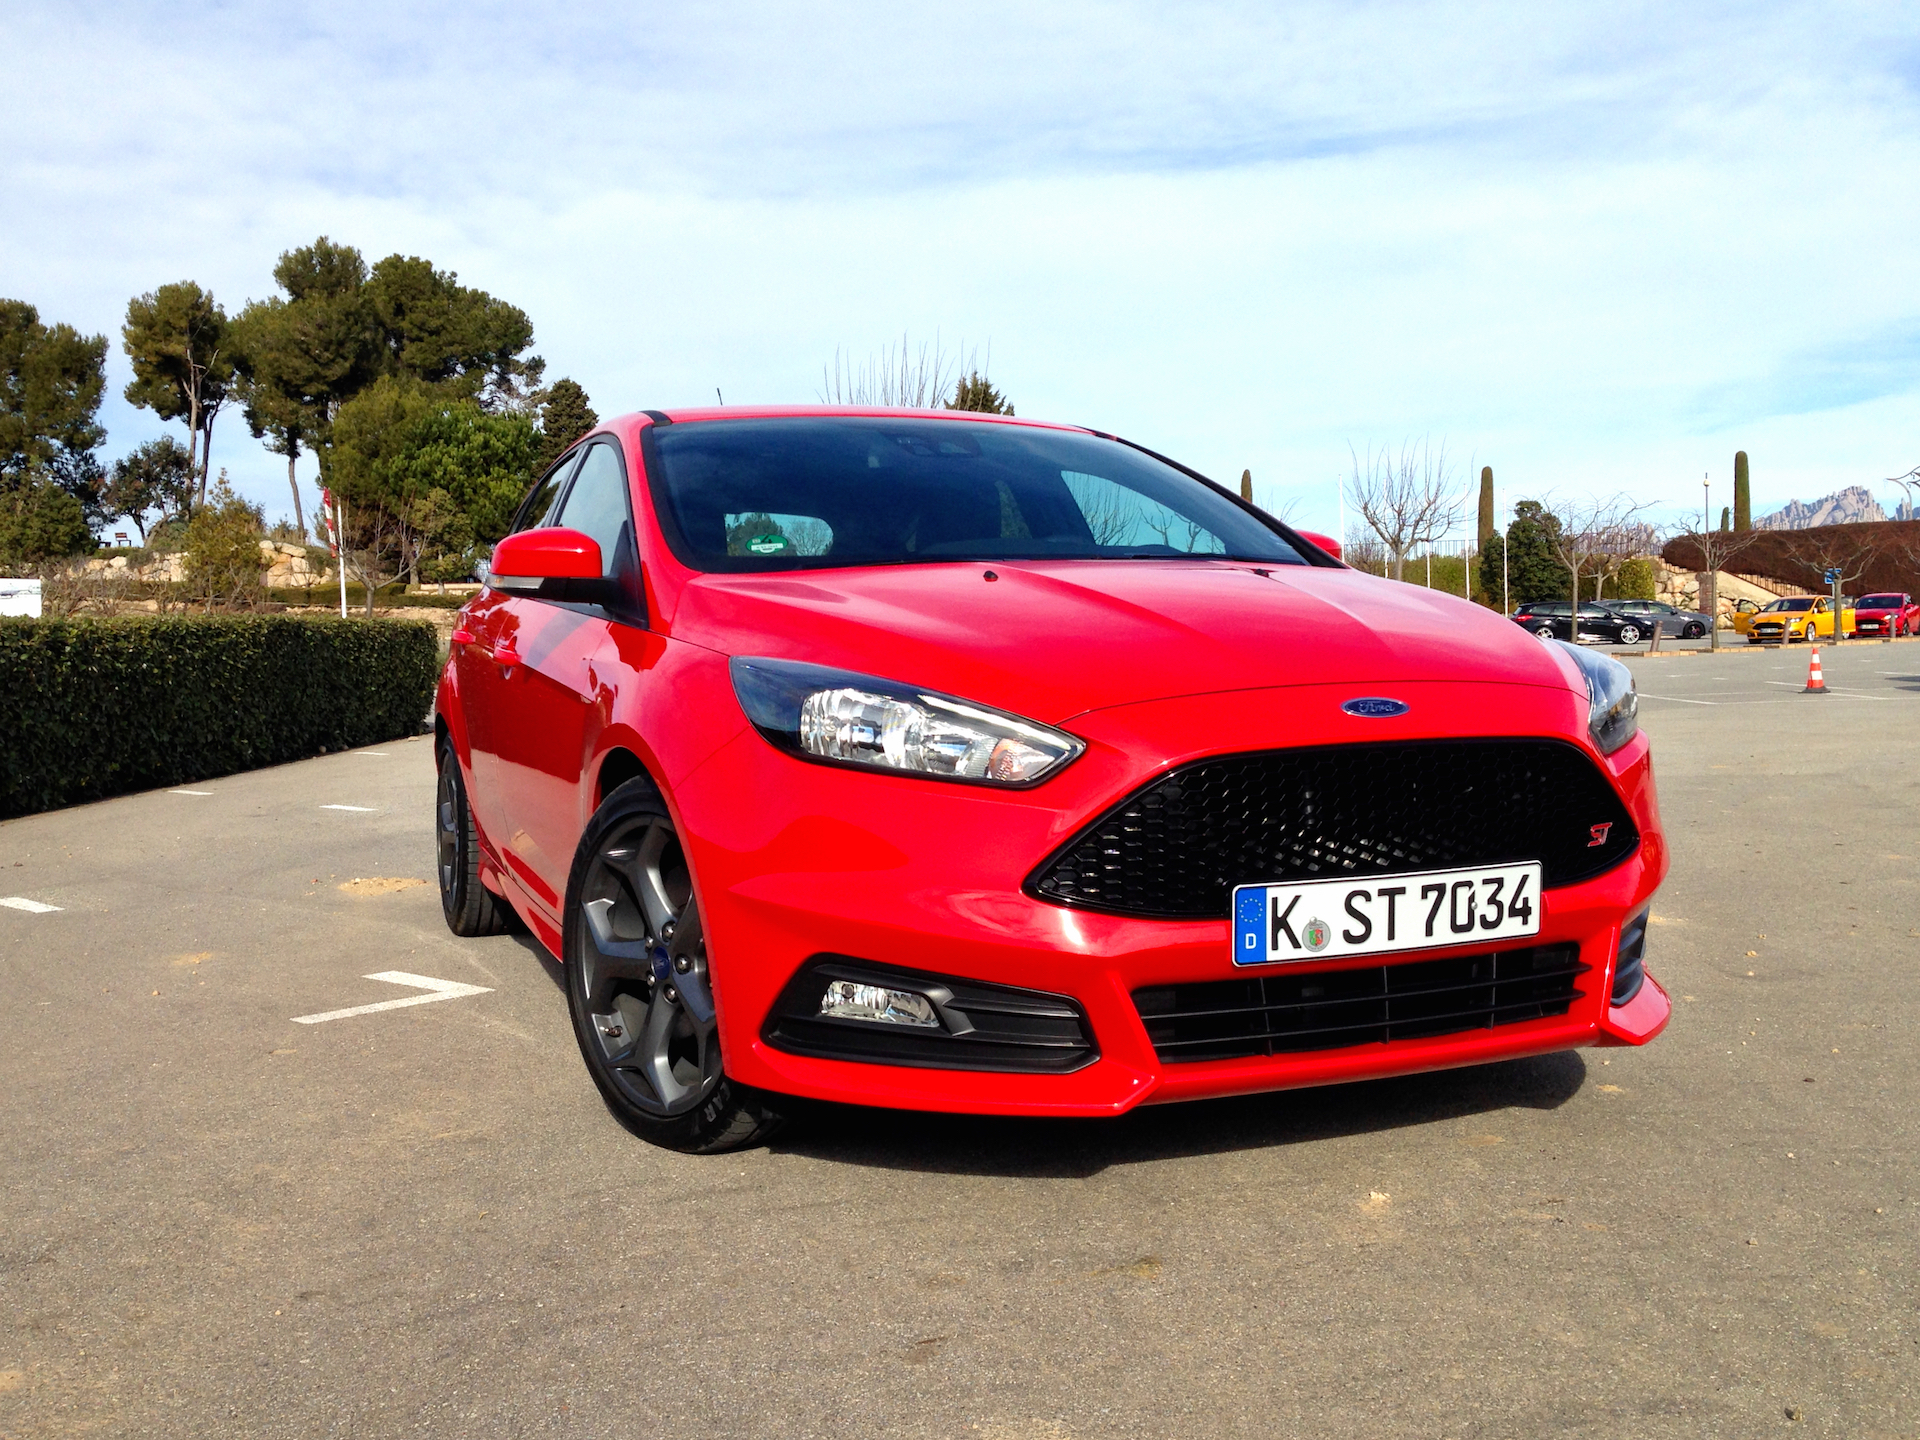 ford focus st diesel acceleration throttlechannelcom - 2014 Ford Focus St Red